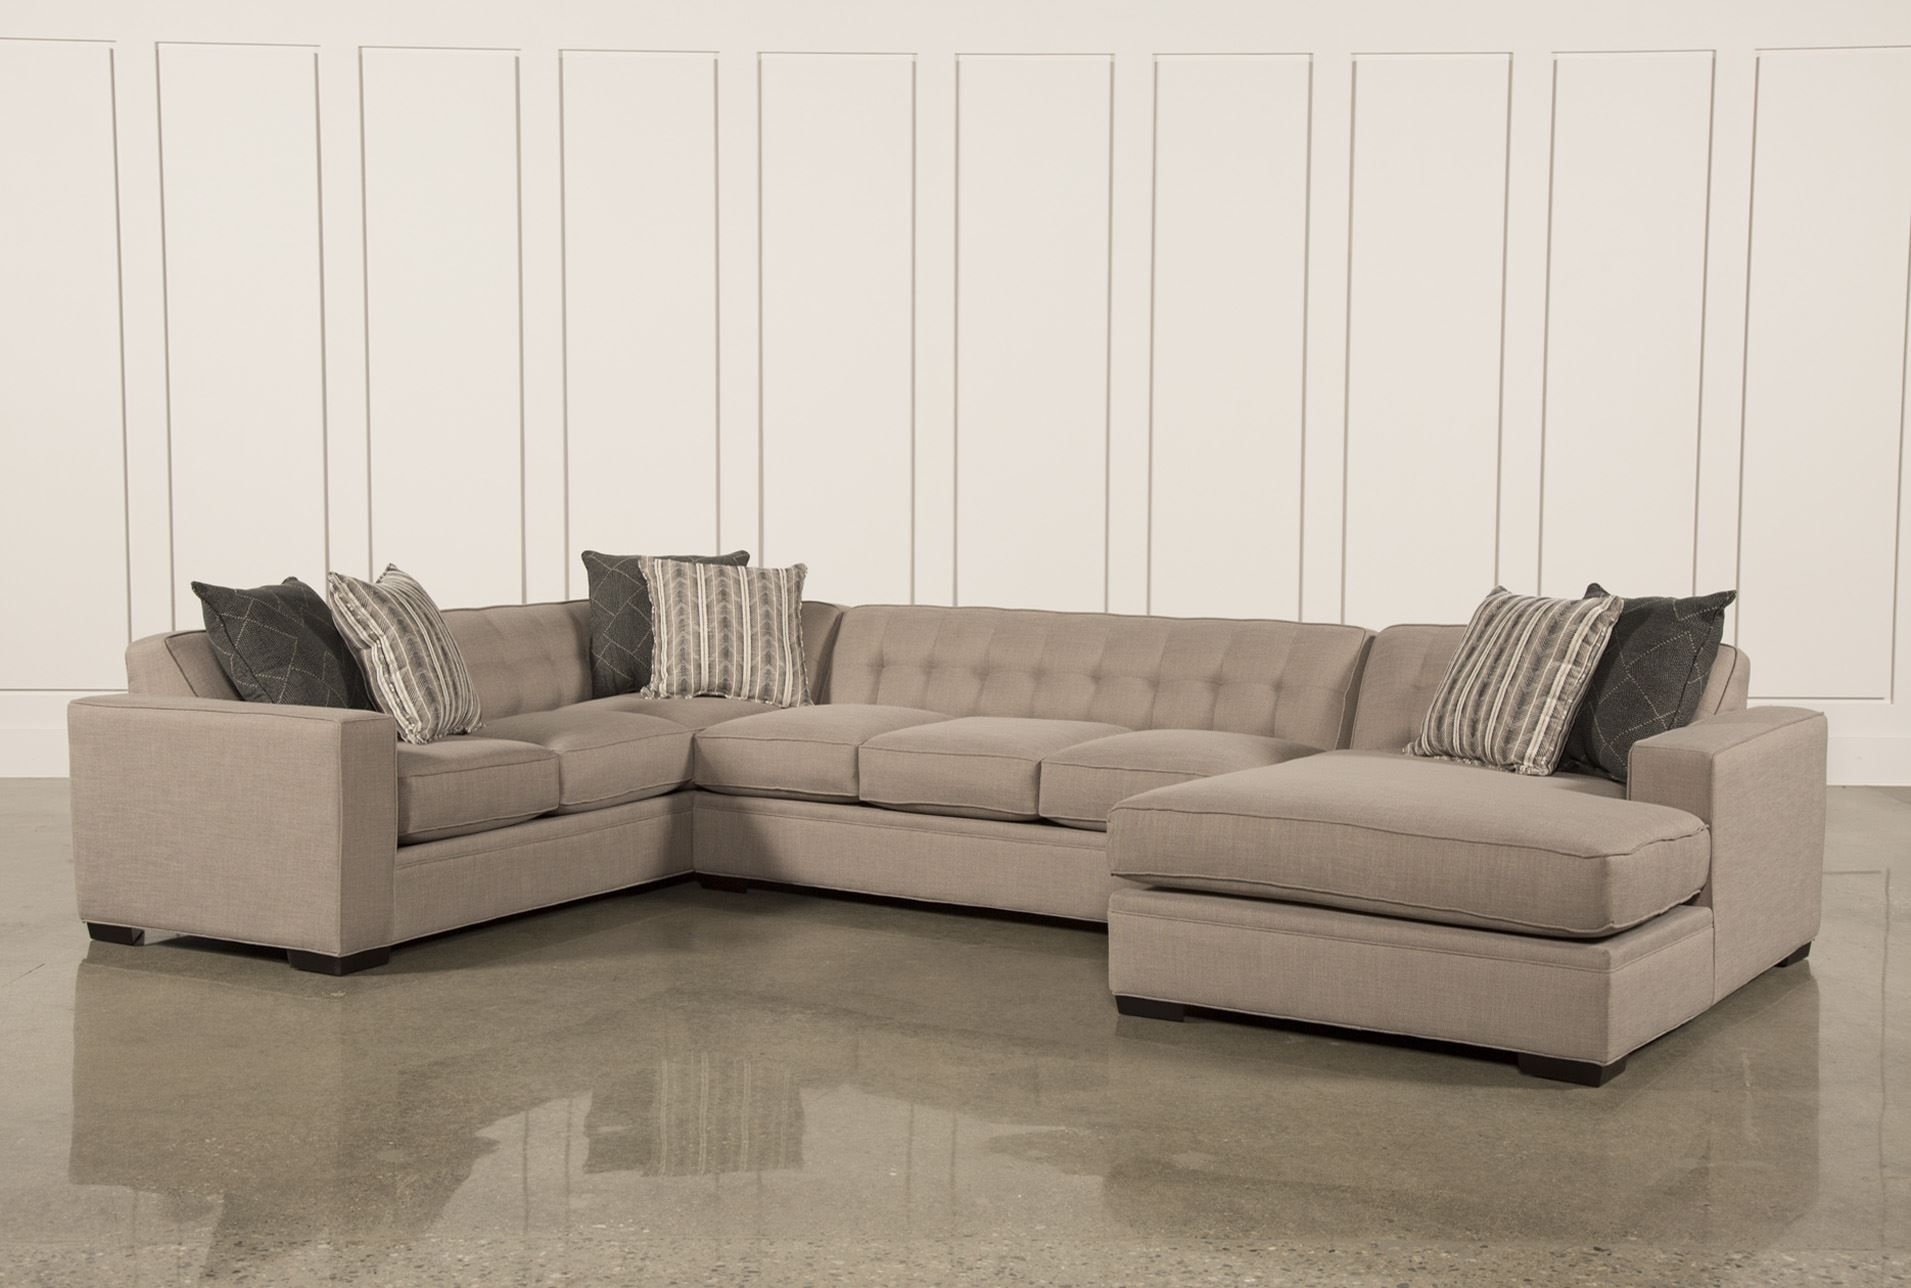 Corbin 3 Piece Sectional W/raf Chaise | New House: Loft | Pinterest intended for Norfolk Grey 6 Piece Sectionals With Raf Chaise (Image 8 of 30)